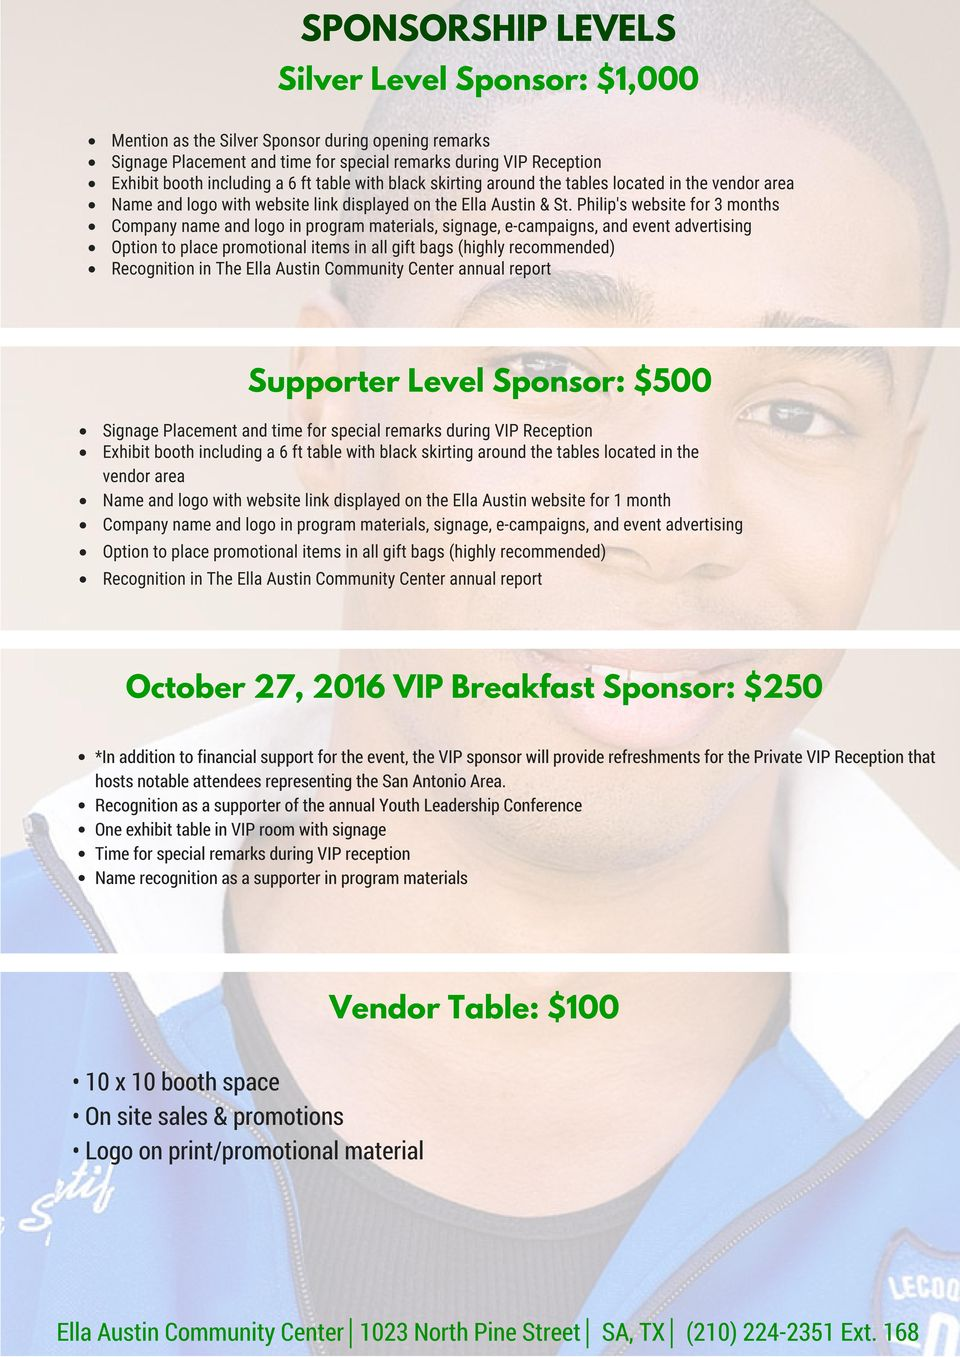 displayed on the Ella Austin website for 1 month October 27, 2016 VIP Breakfast Sponsor: $250 *In addition to financial support for the event, the VIP sponsor will provide refreshments for the